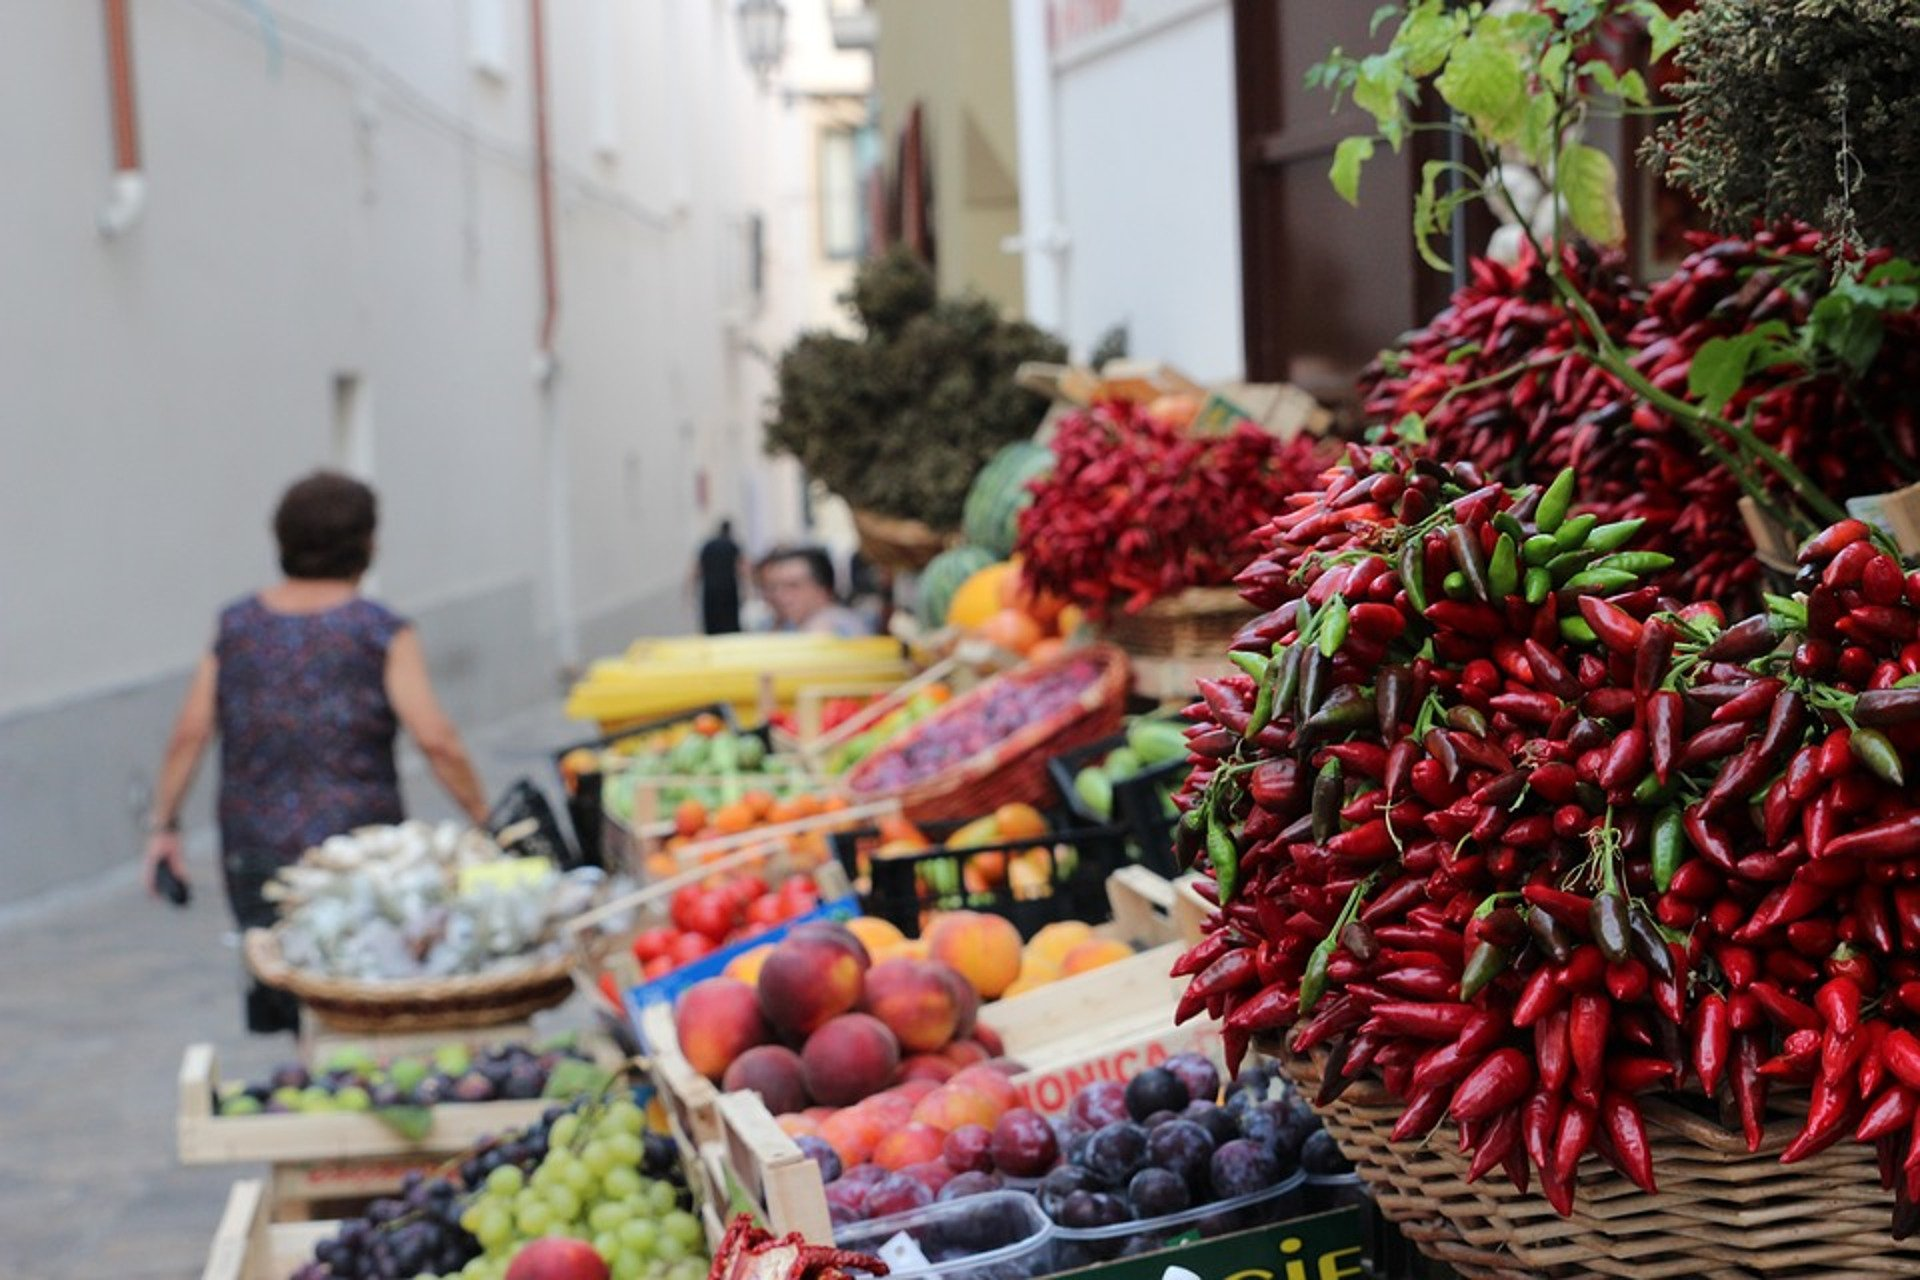 the stalls of a market in a street of Ventimiglia